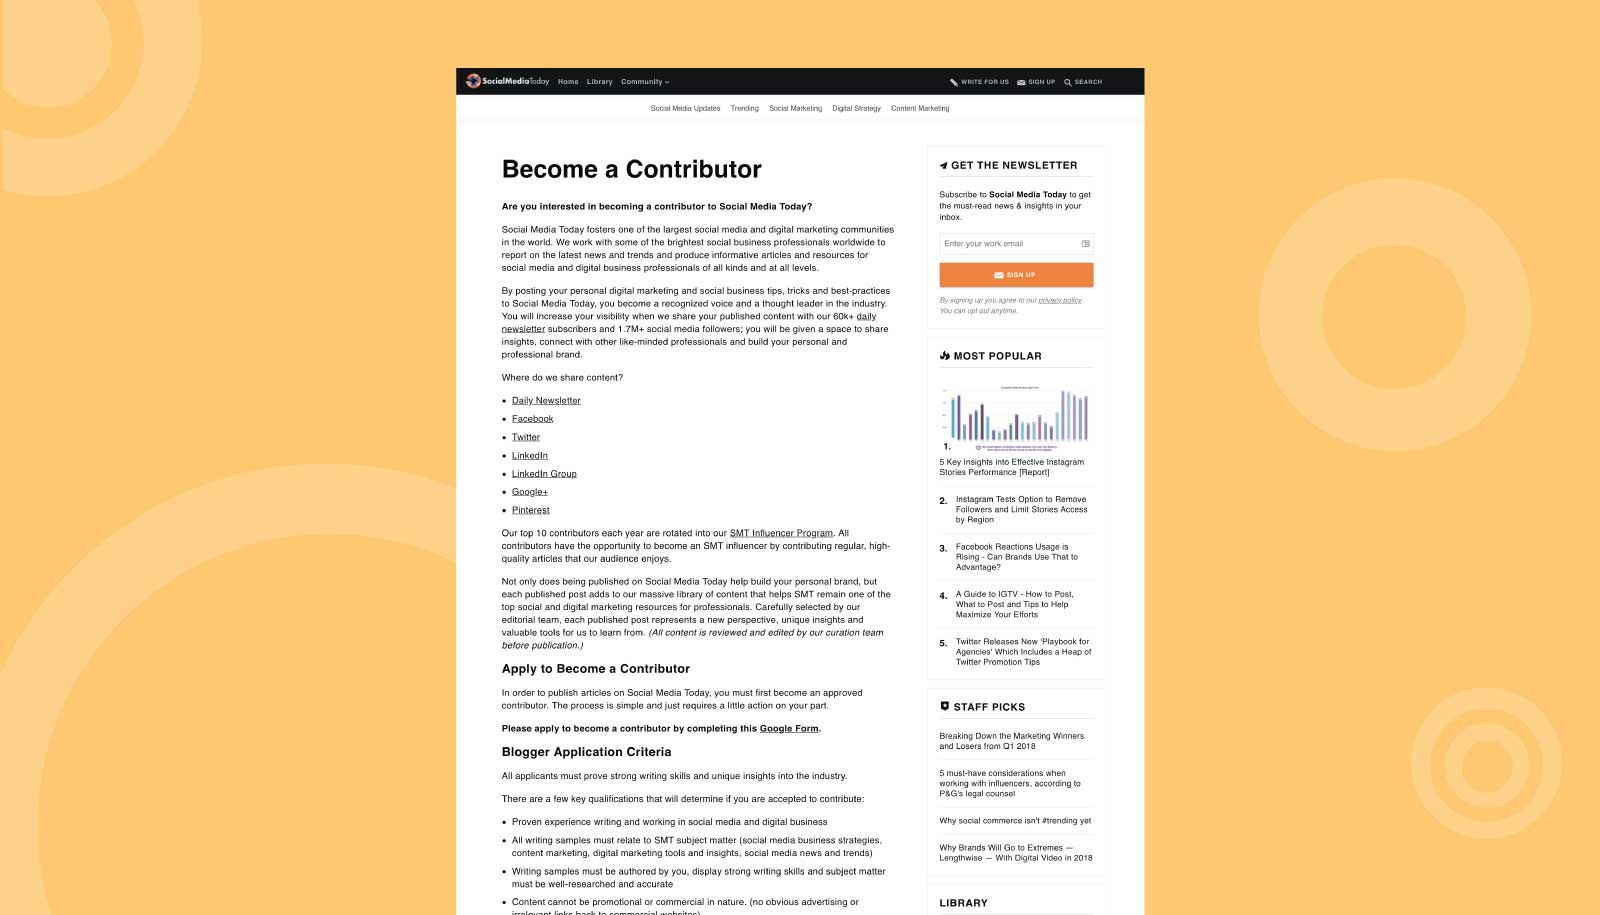 Initial Become a Contributor page